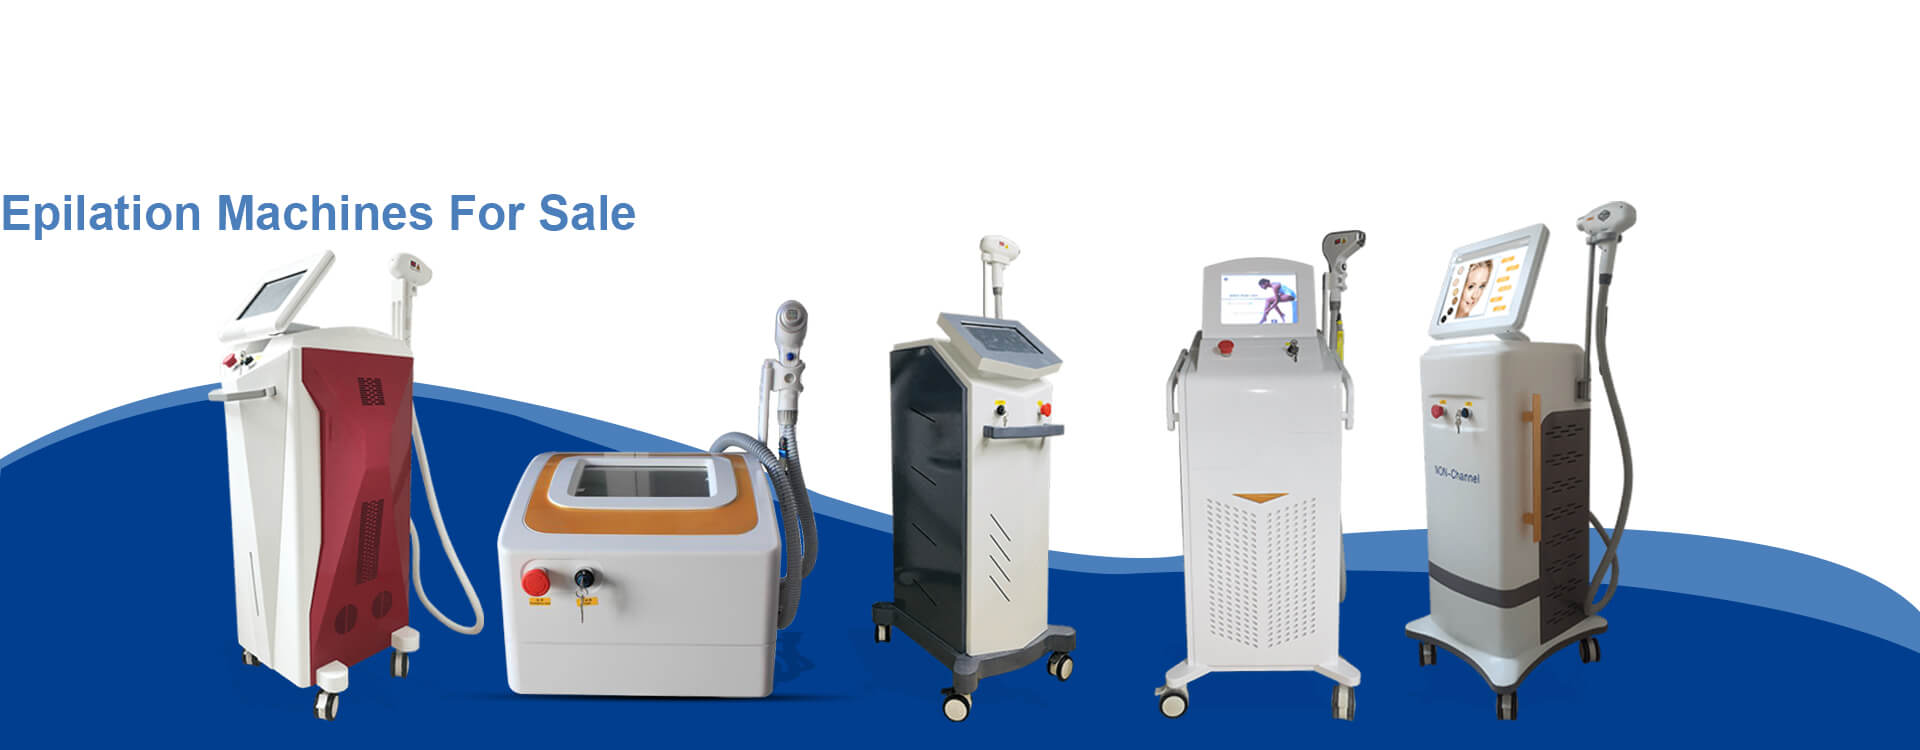 Epilation Machines For Sale